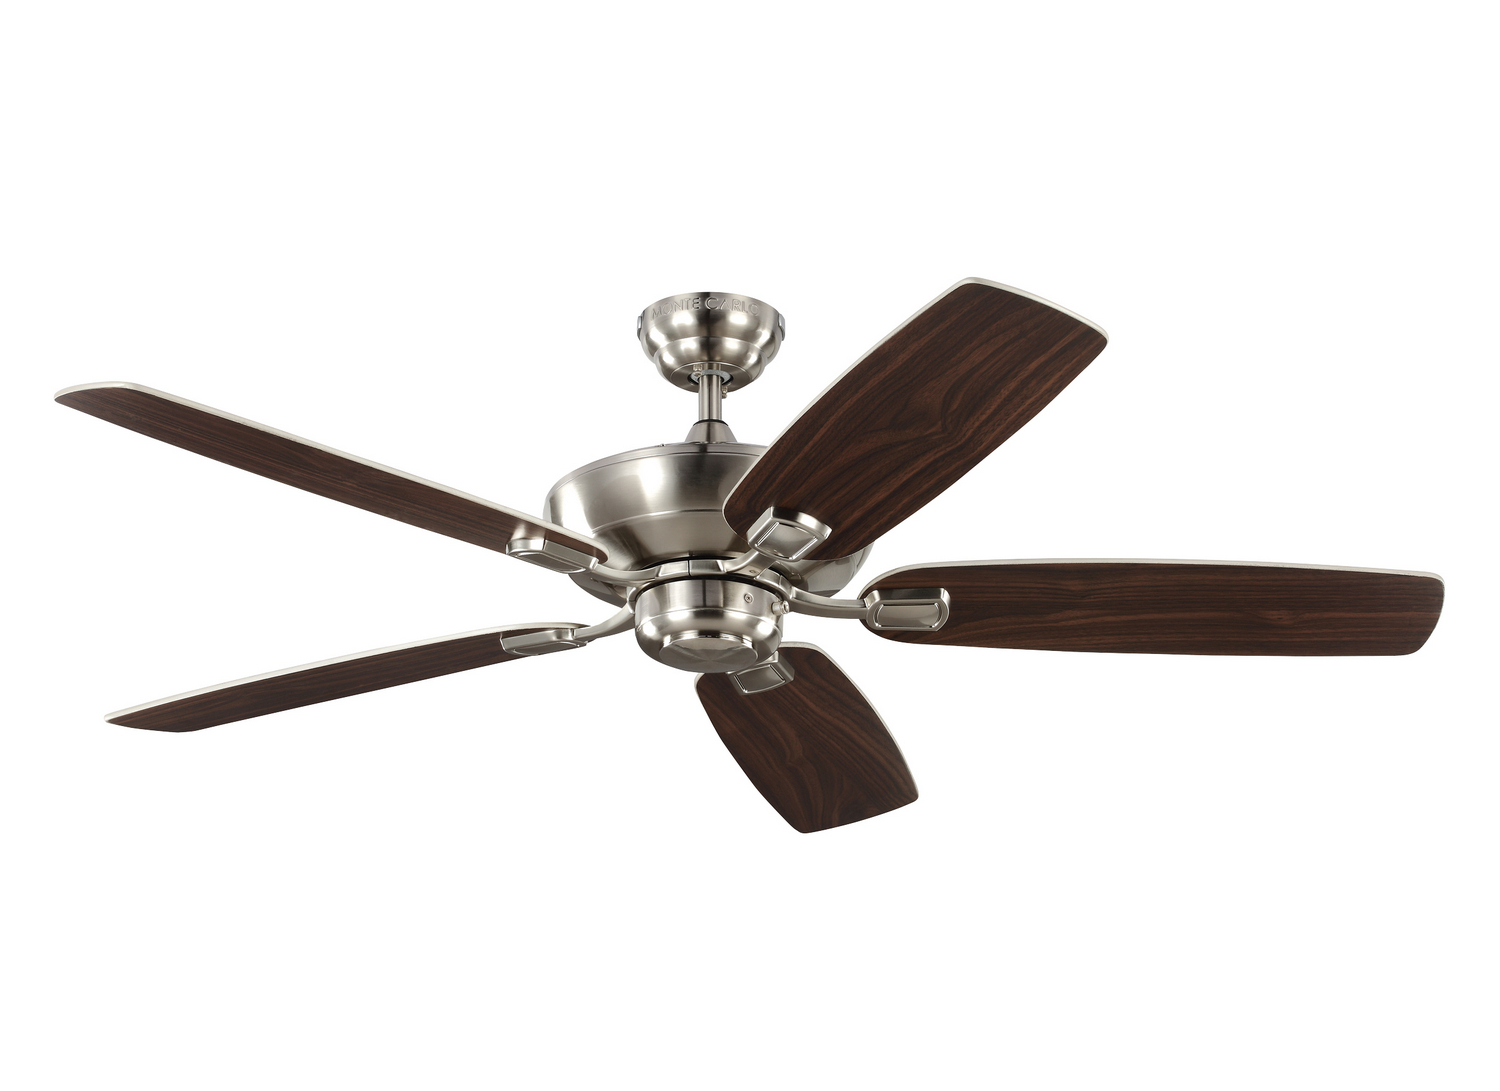 52 inchCeiling Fan from the Colony Max collection by Monte Carlo 5COM52BS